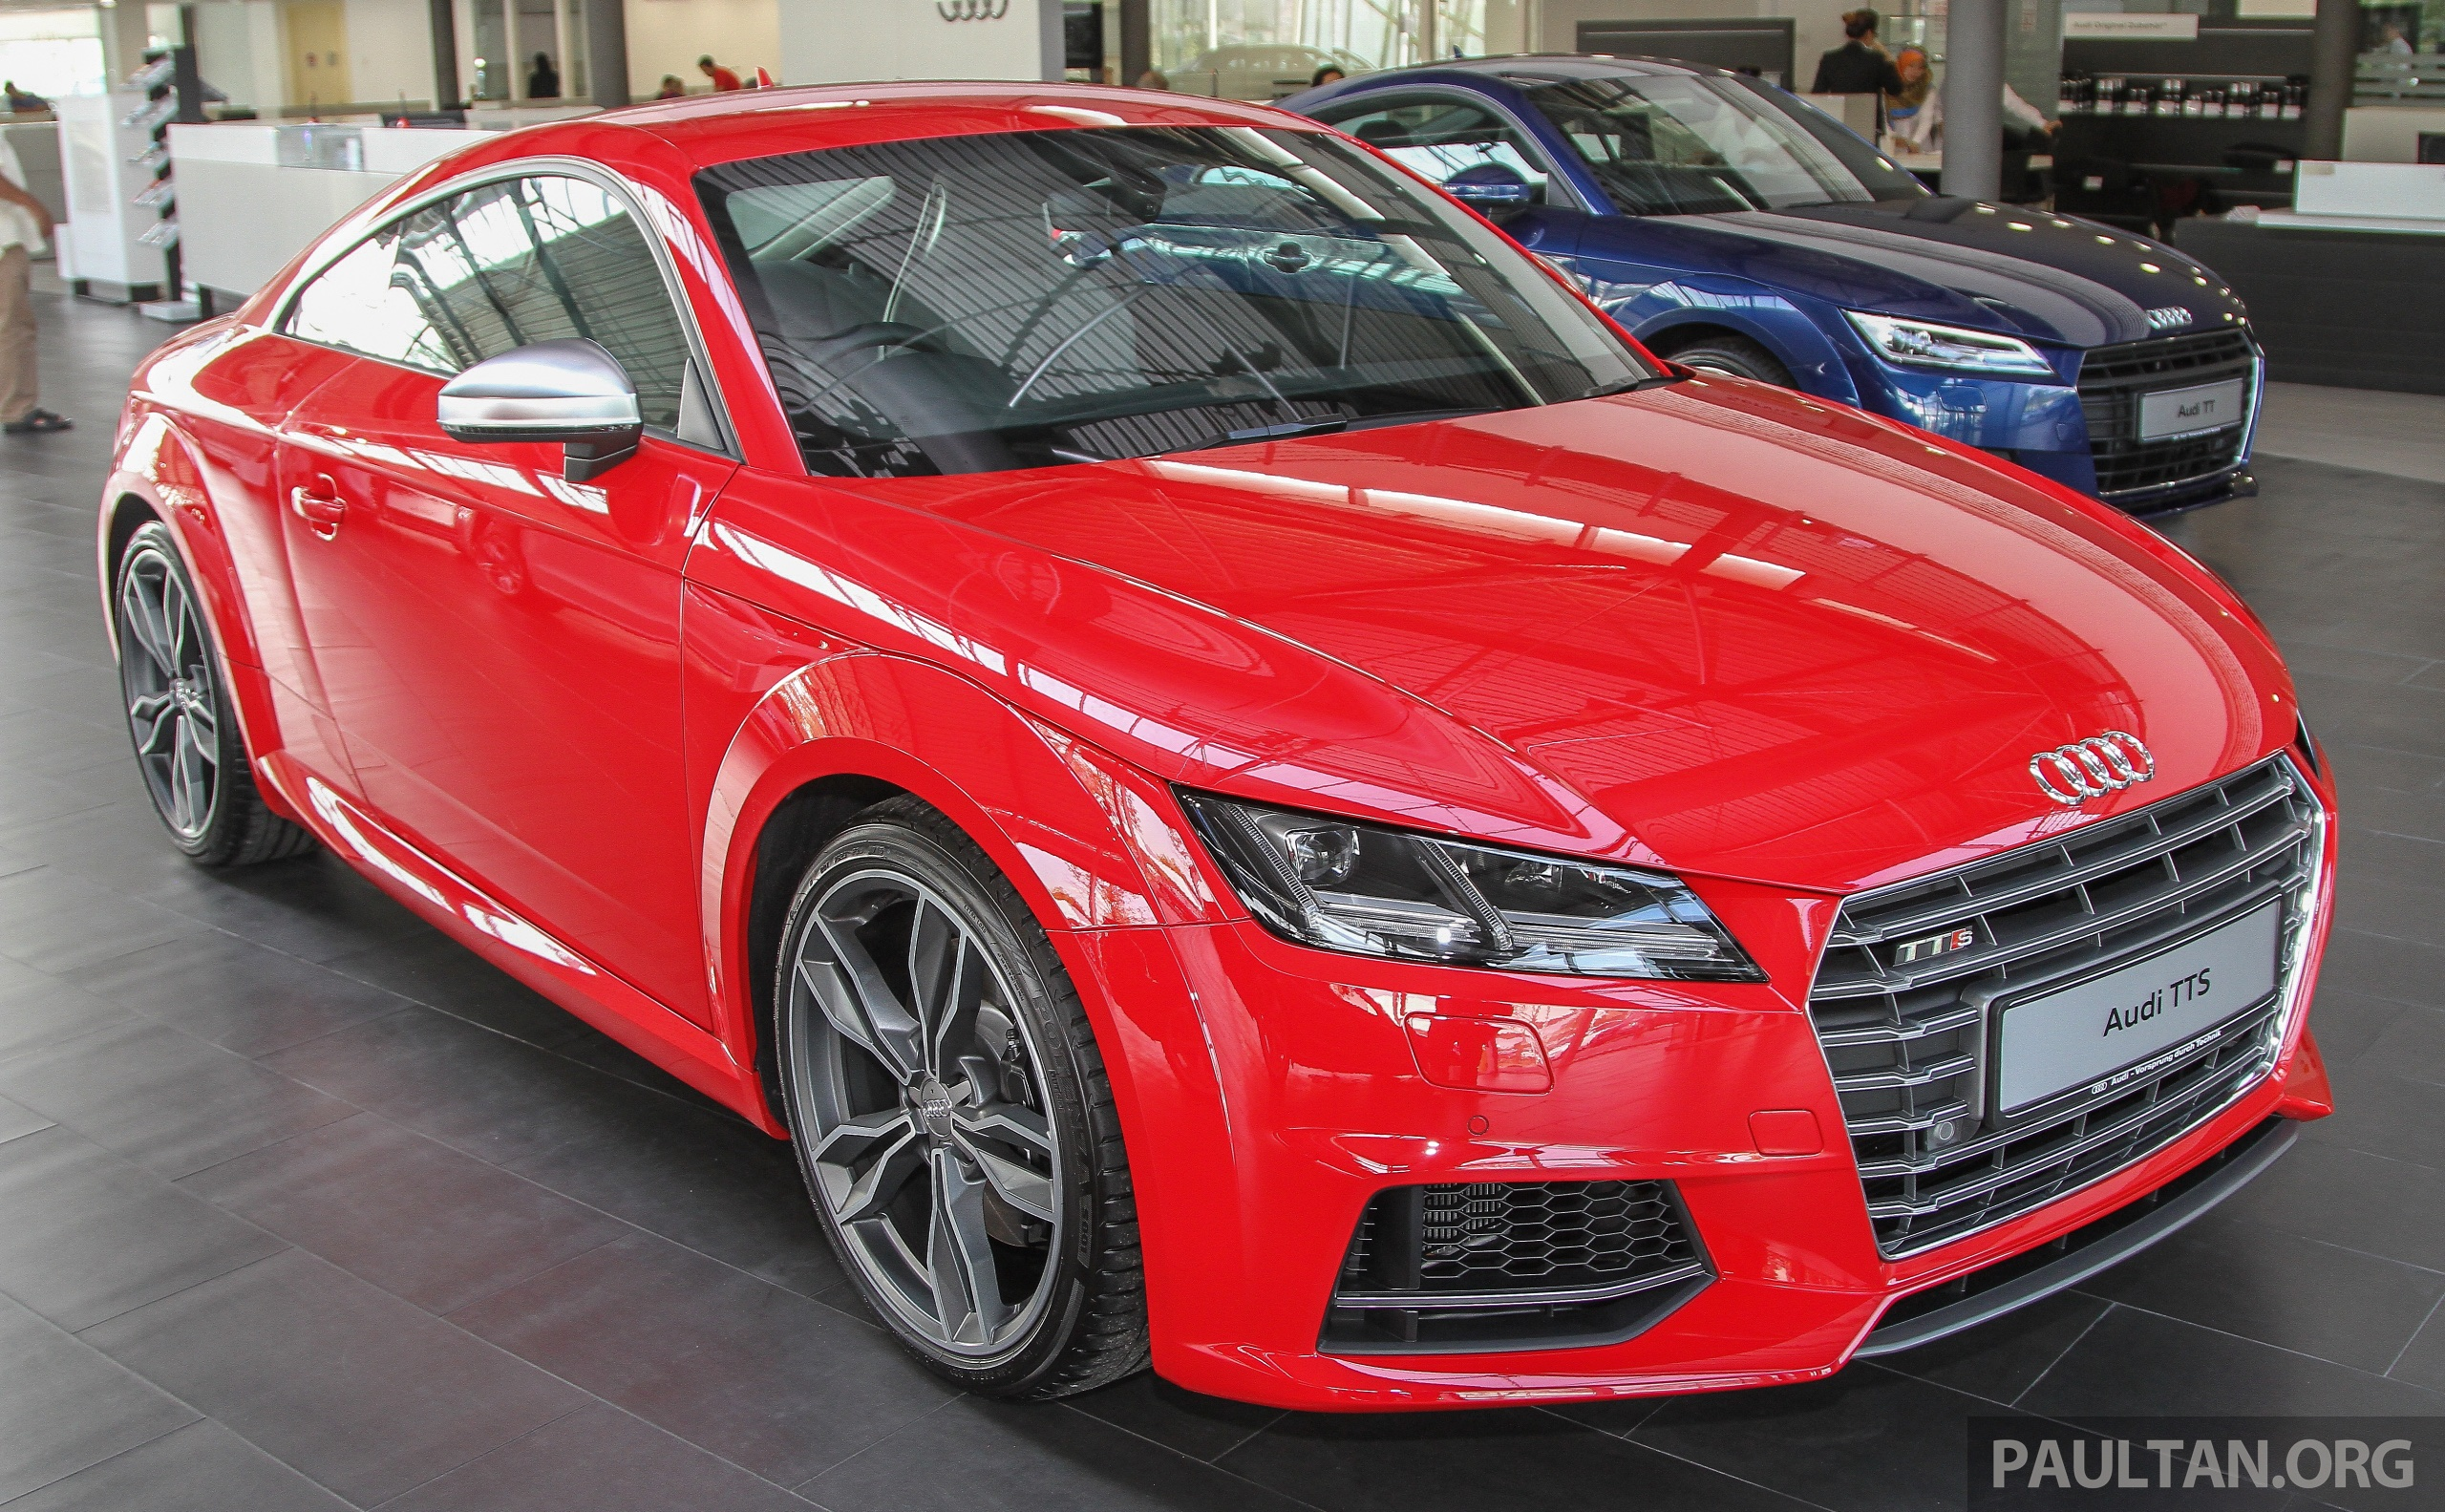 Gallery Audi Tts Quattro In Malaysian Showroom Image 400105